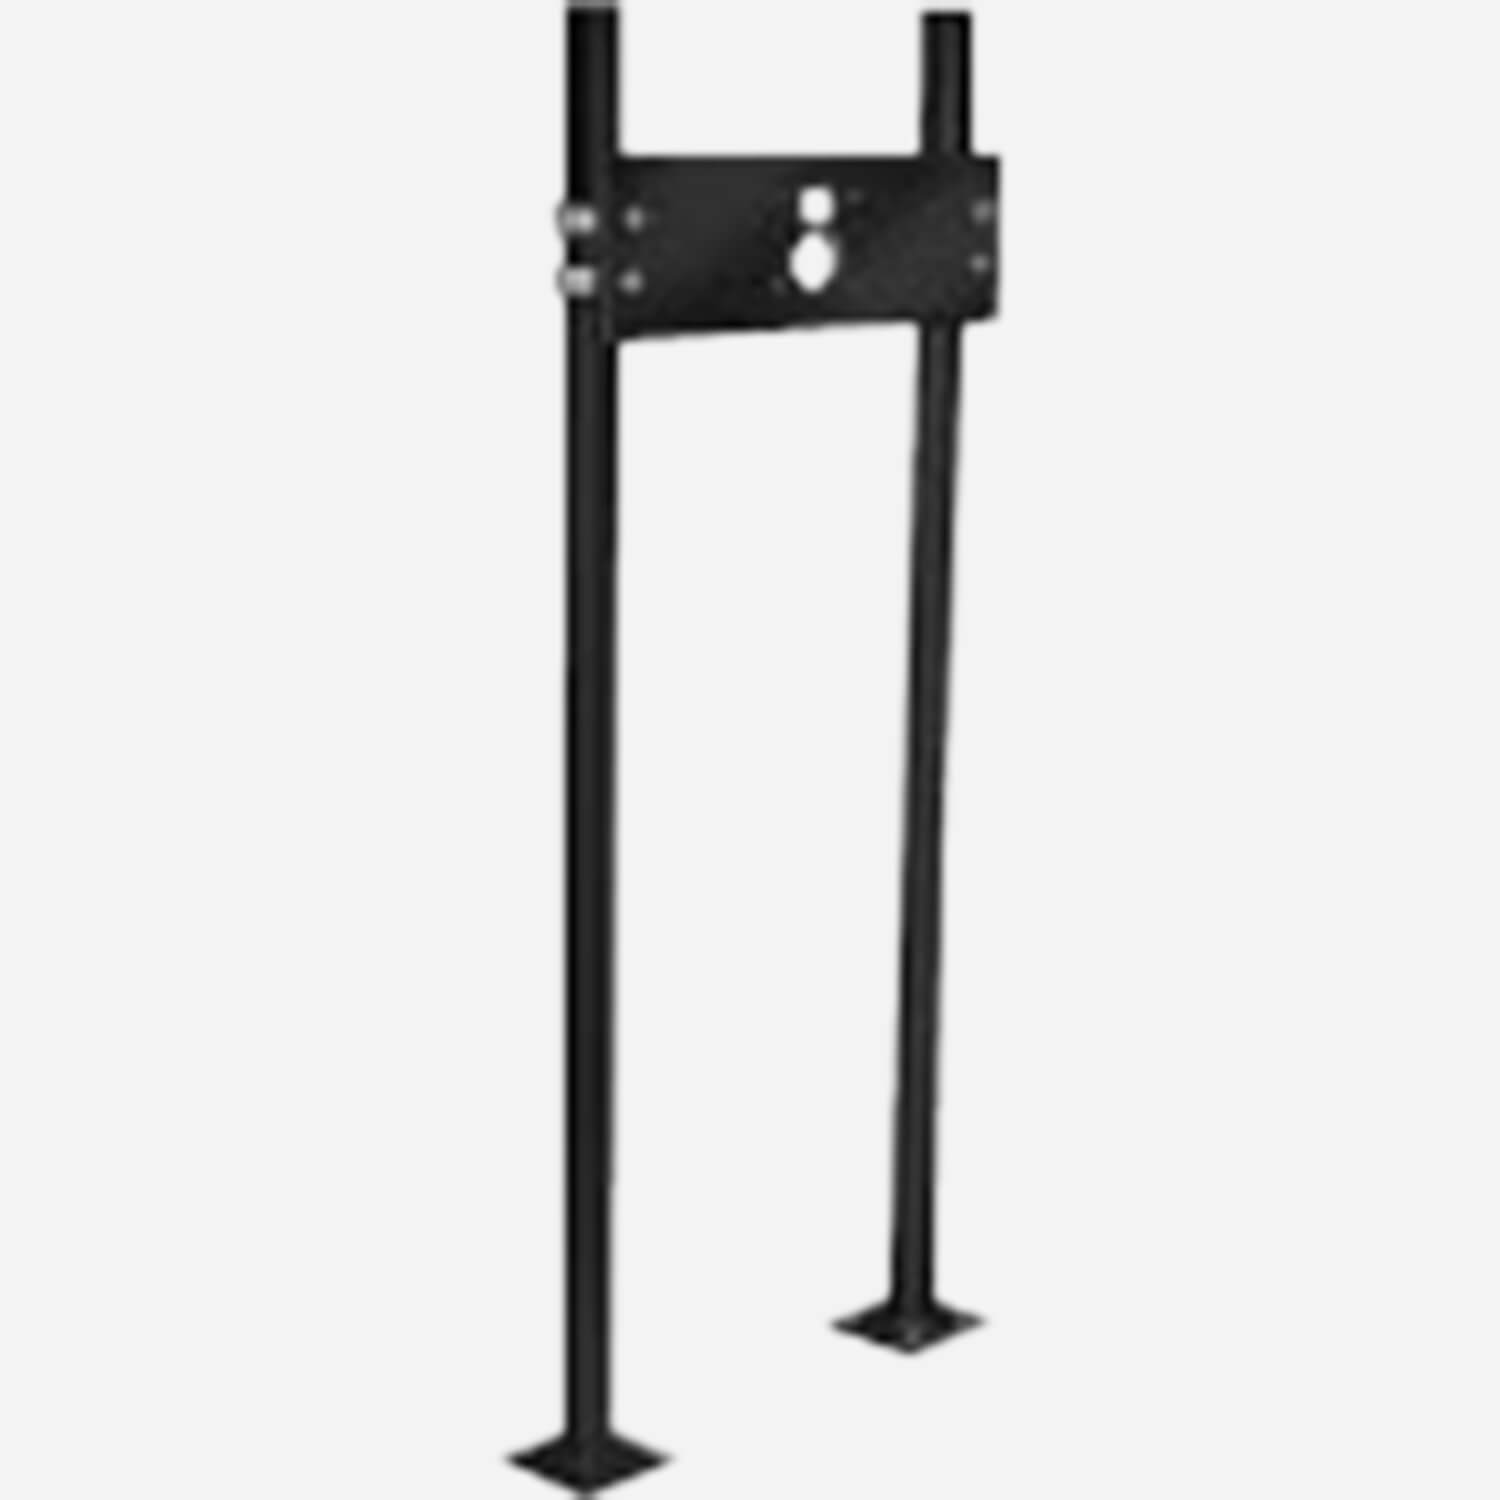 Pro-Set Upright for Multiple Drinking Fountains with Concealed Wall Brackets - Floor Mounted